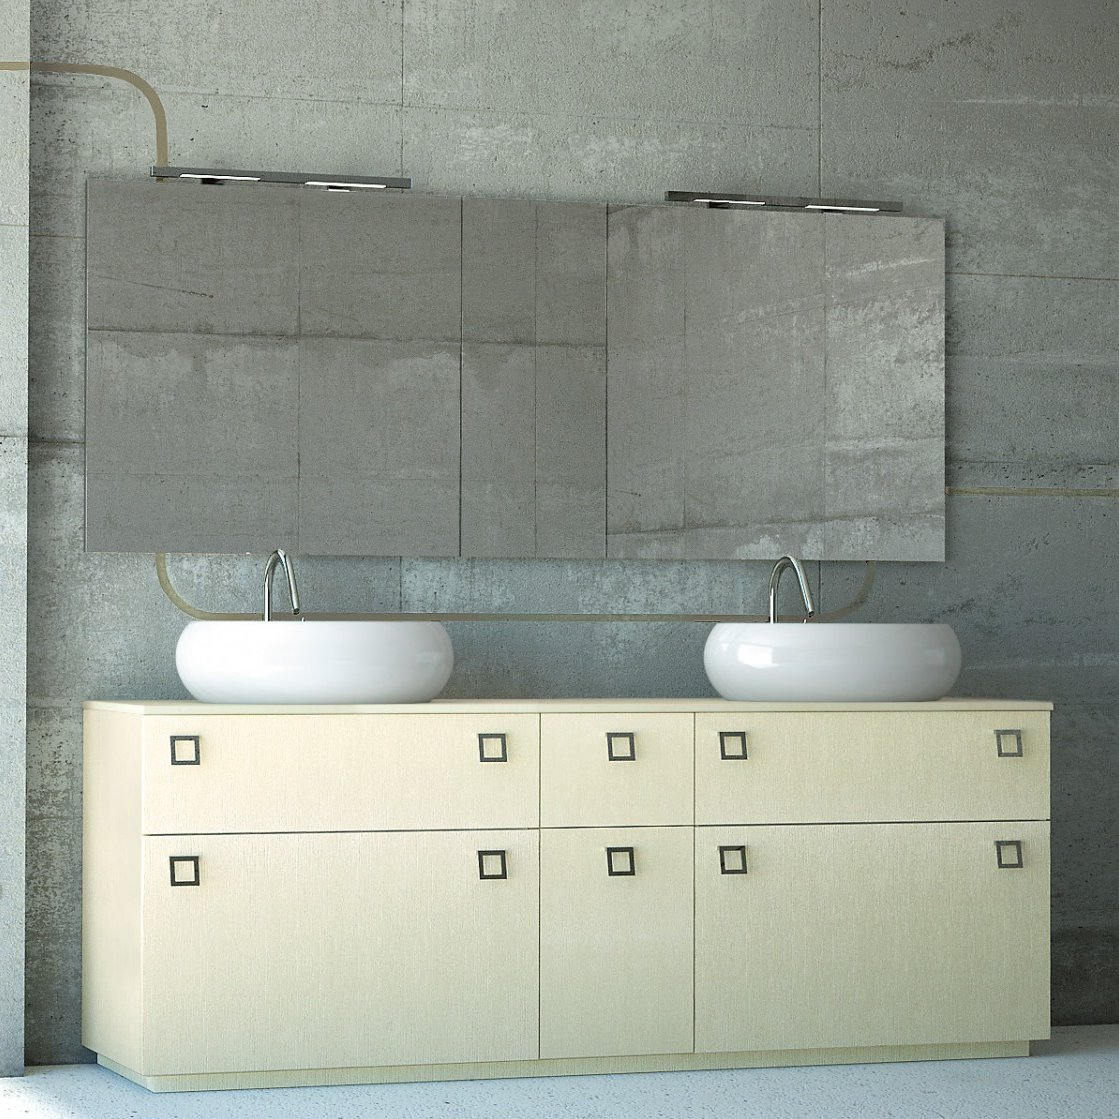 Emejing Bagno Con Due Lavabi Gallery - Skilifts.us - skilifts.us